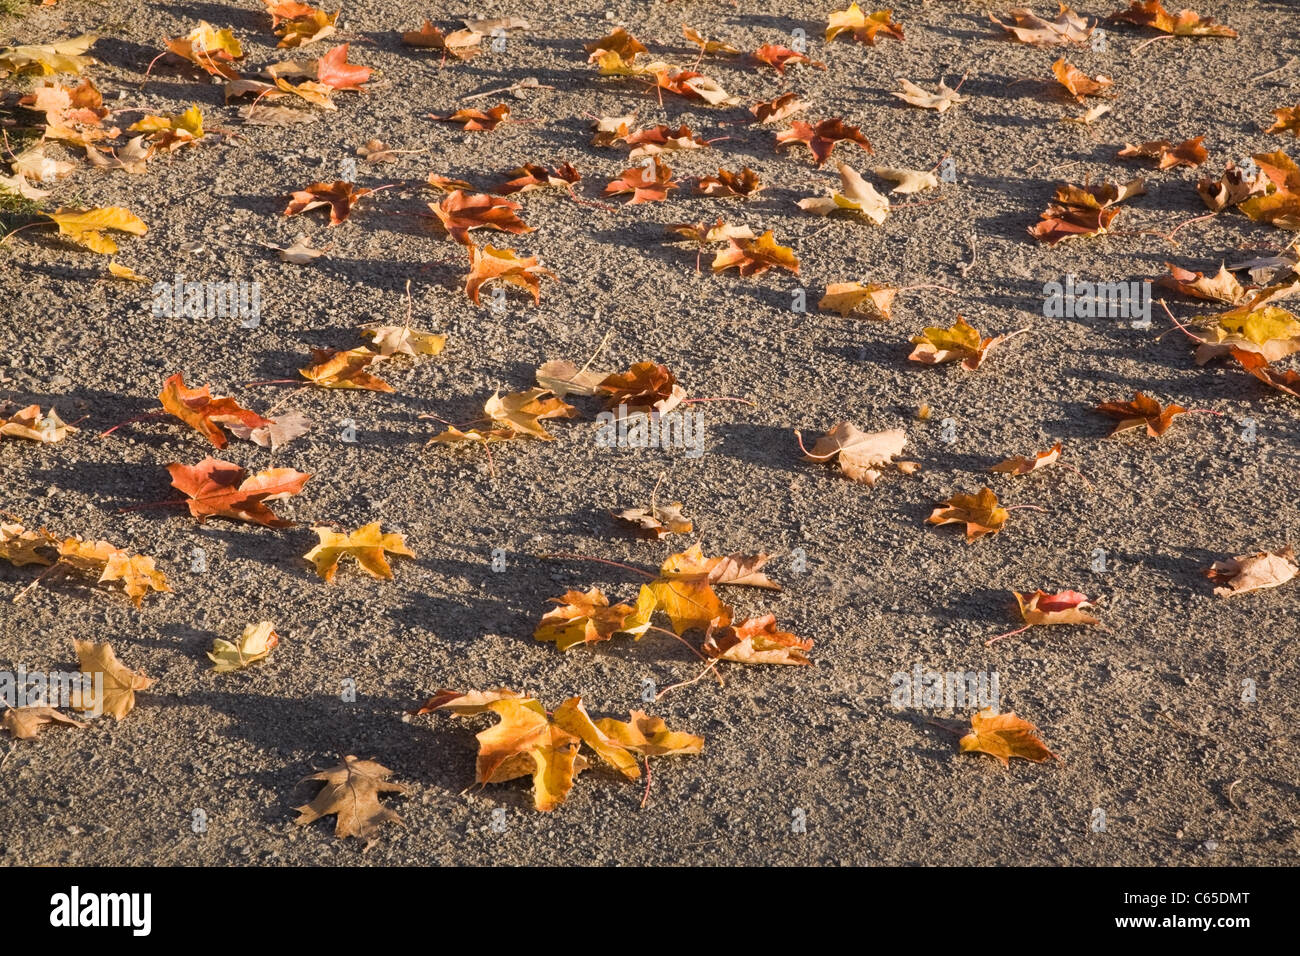 Autumn leaves on the ground - Stock Image